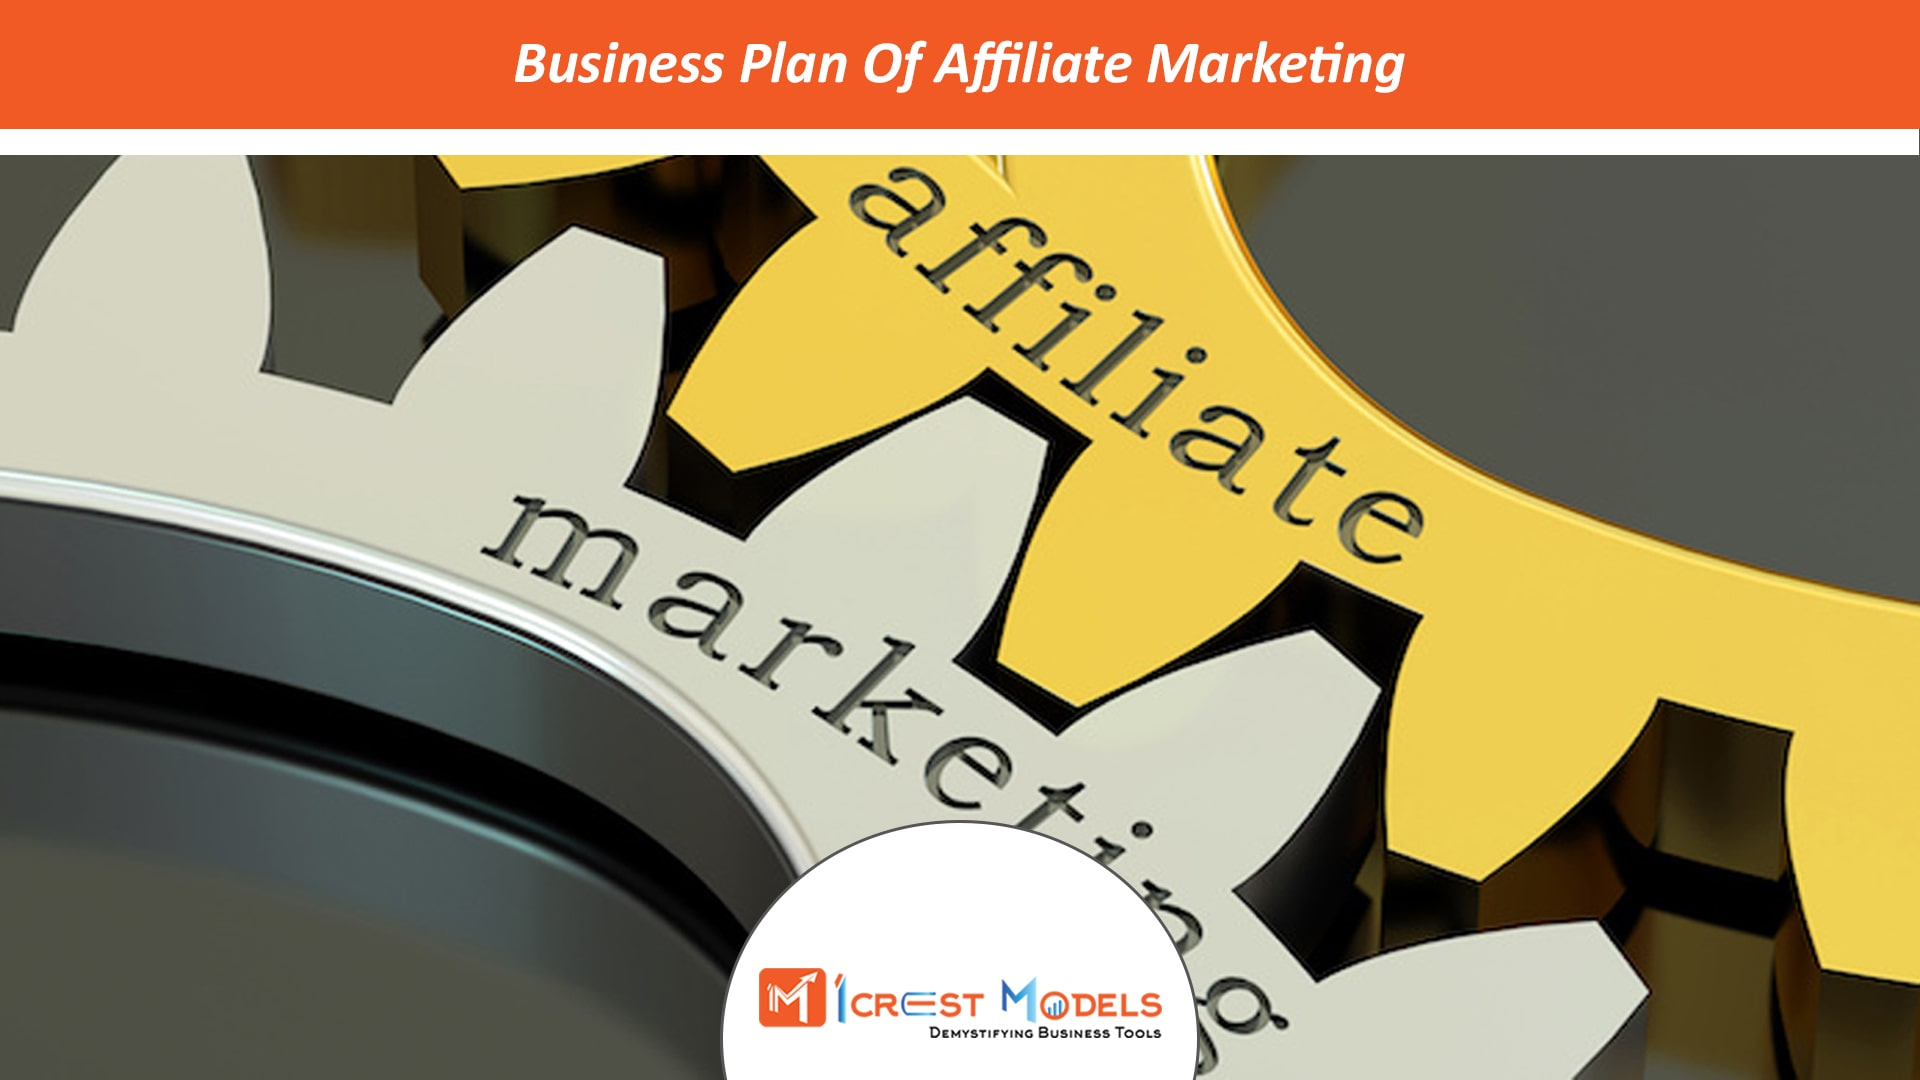 Business Plan of an Affiliate Marketing Business